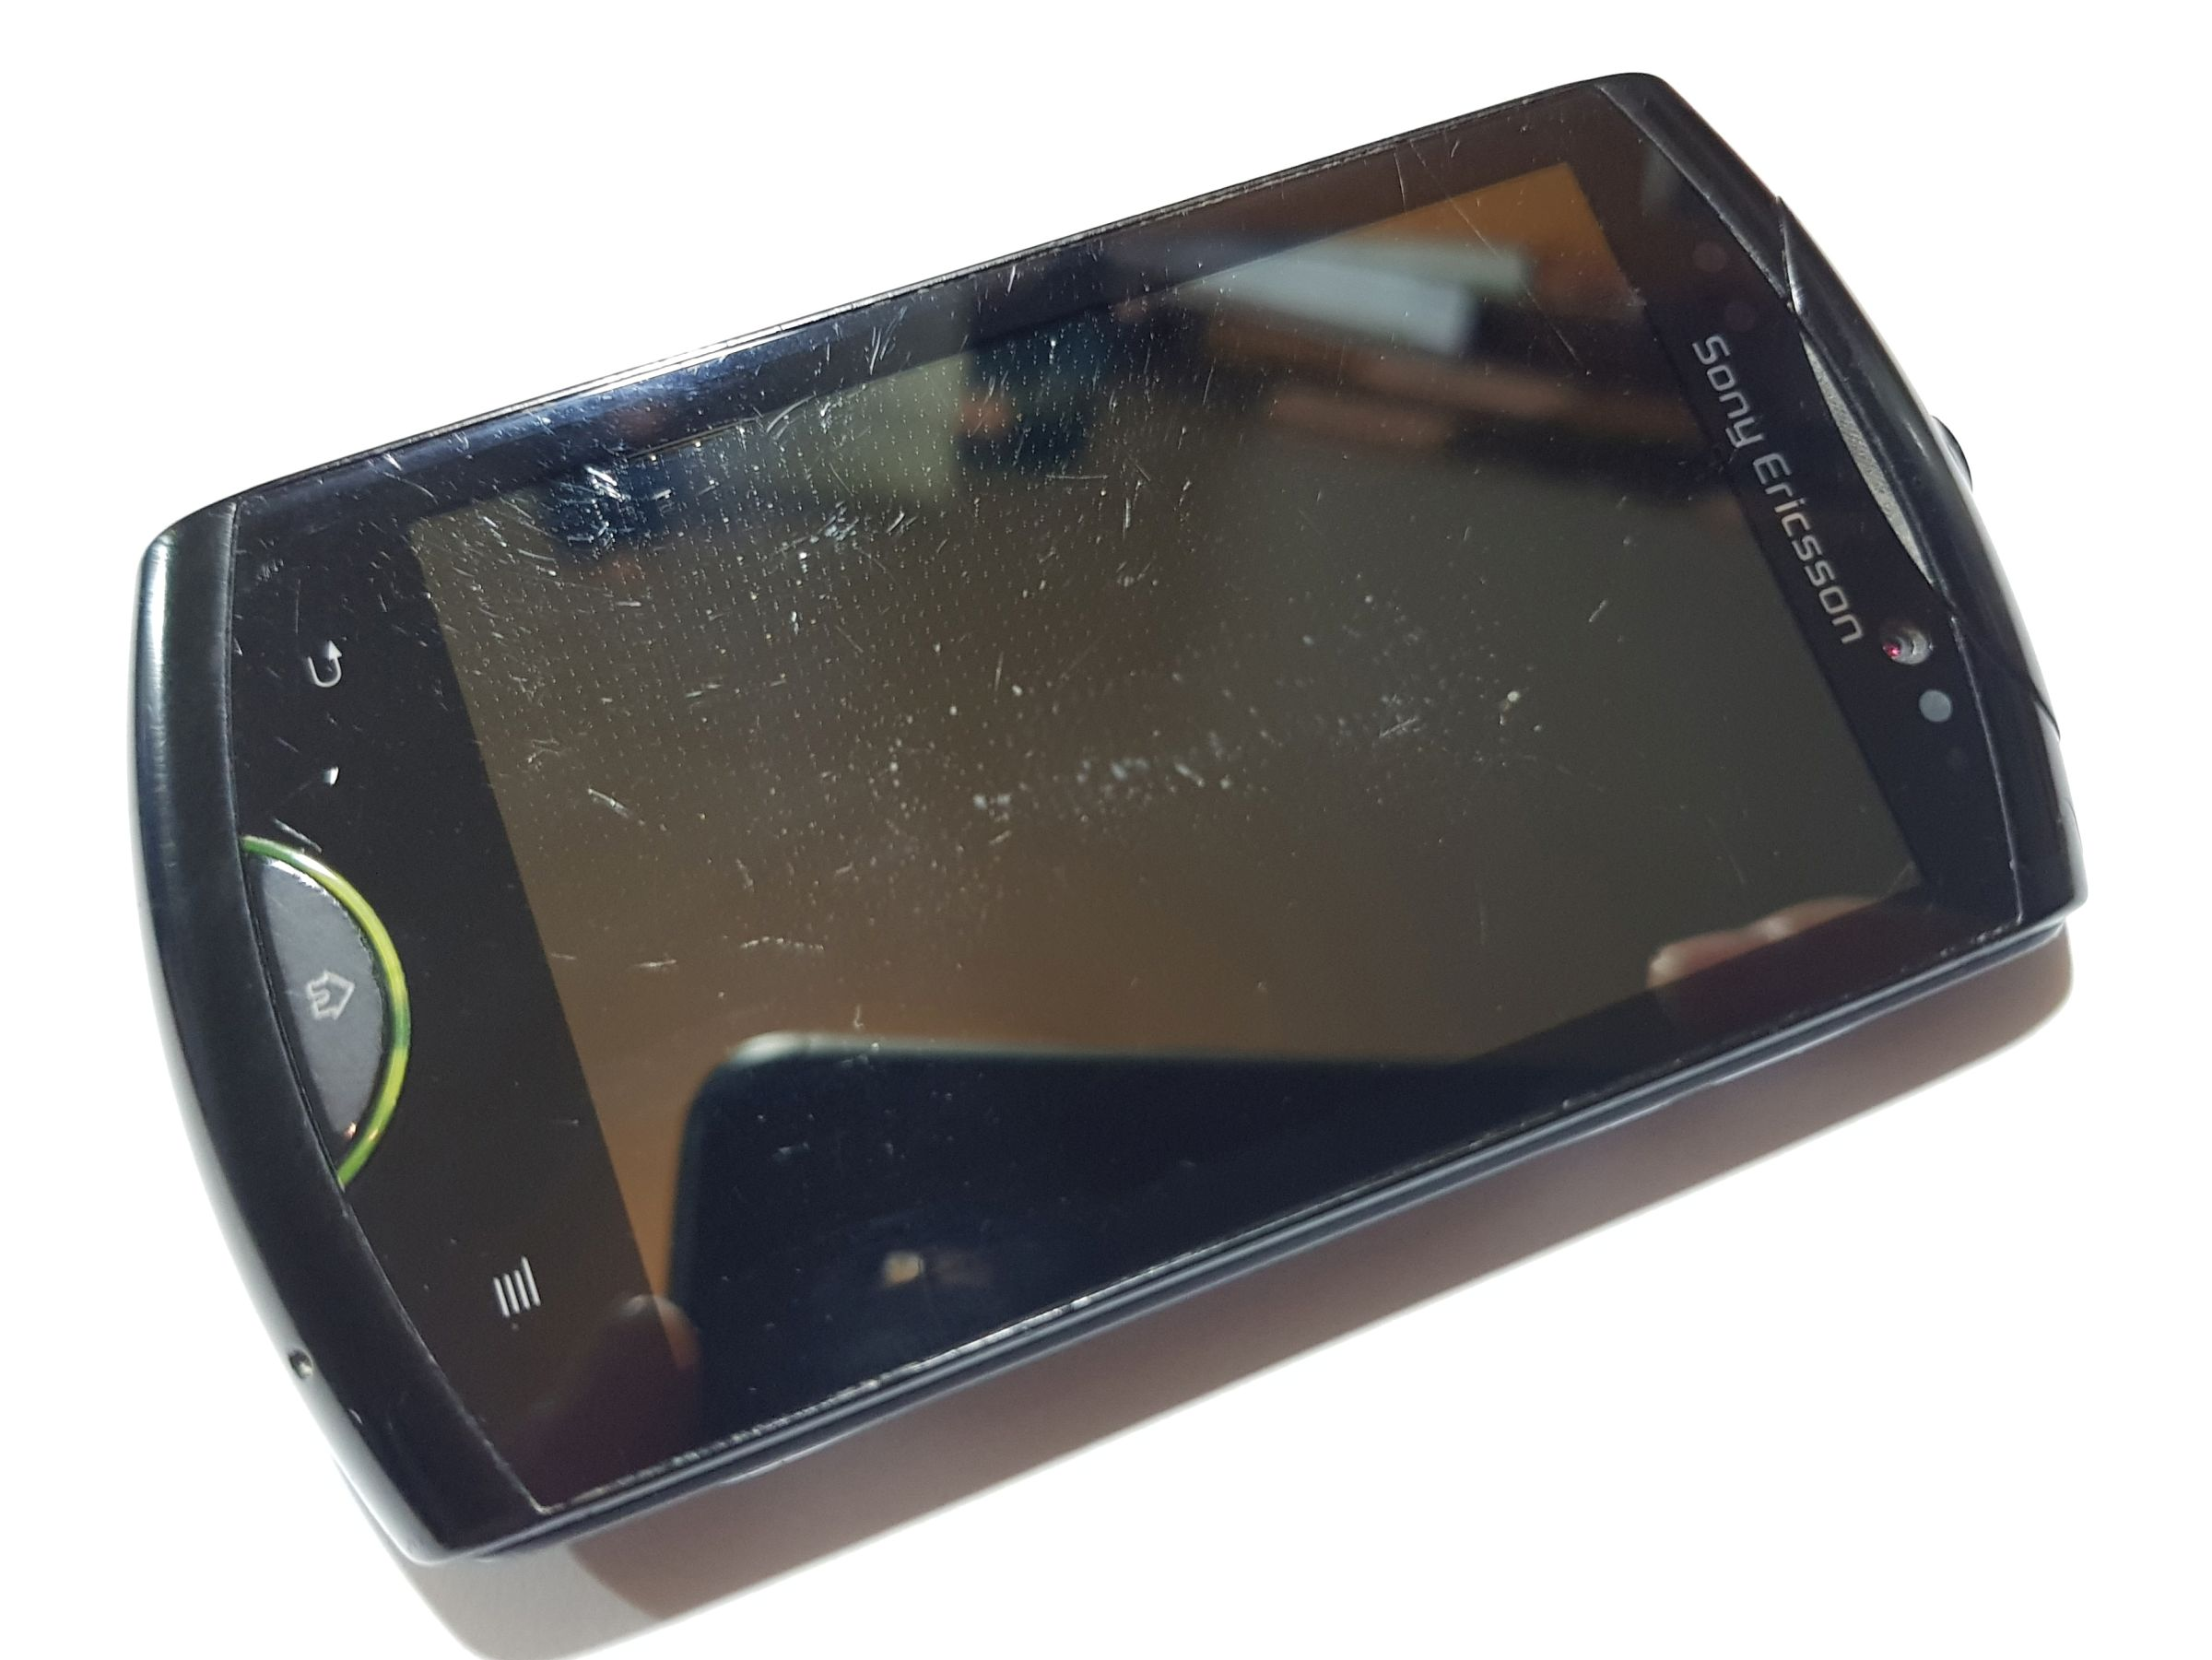 Sony Ericsson SE Live with Walkman WT19 WT19i